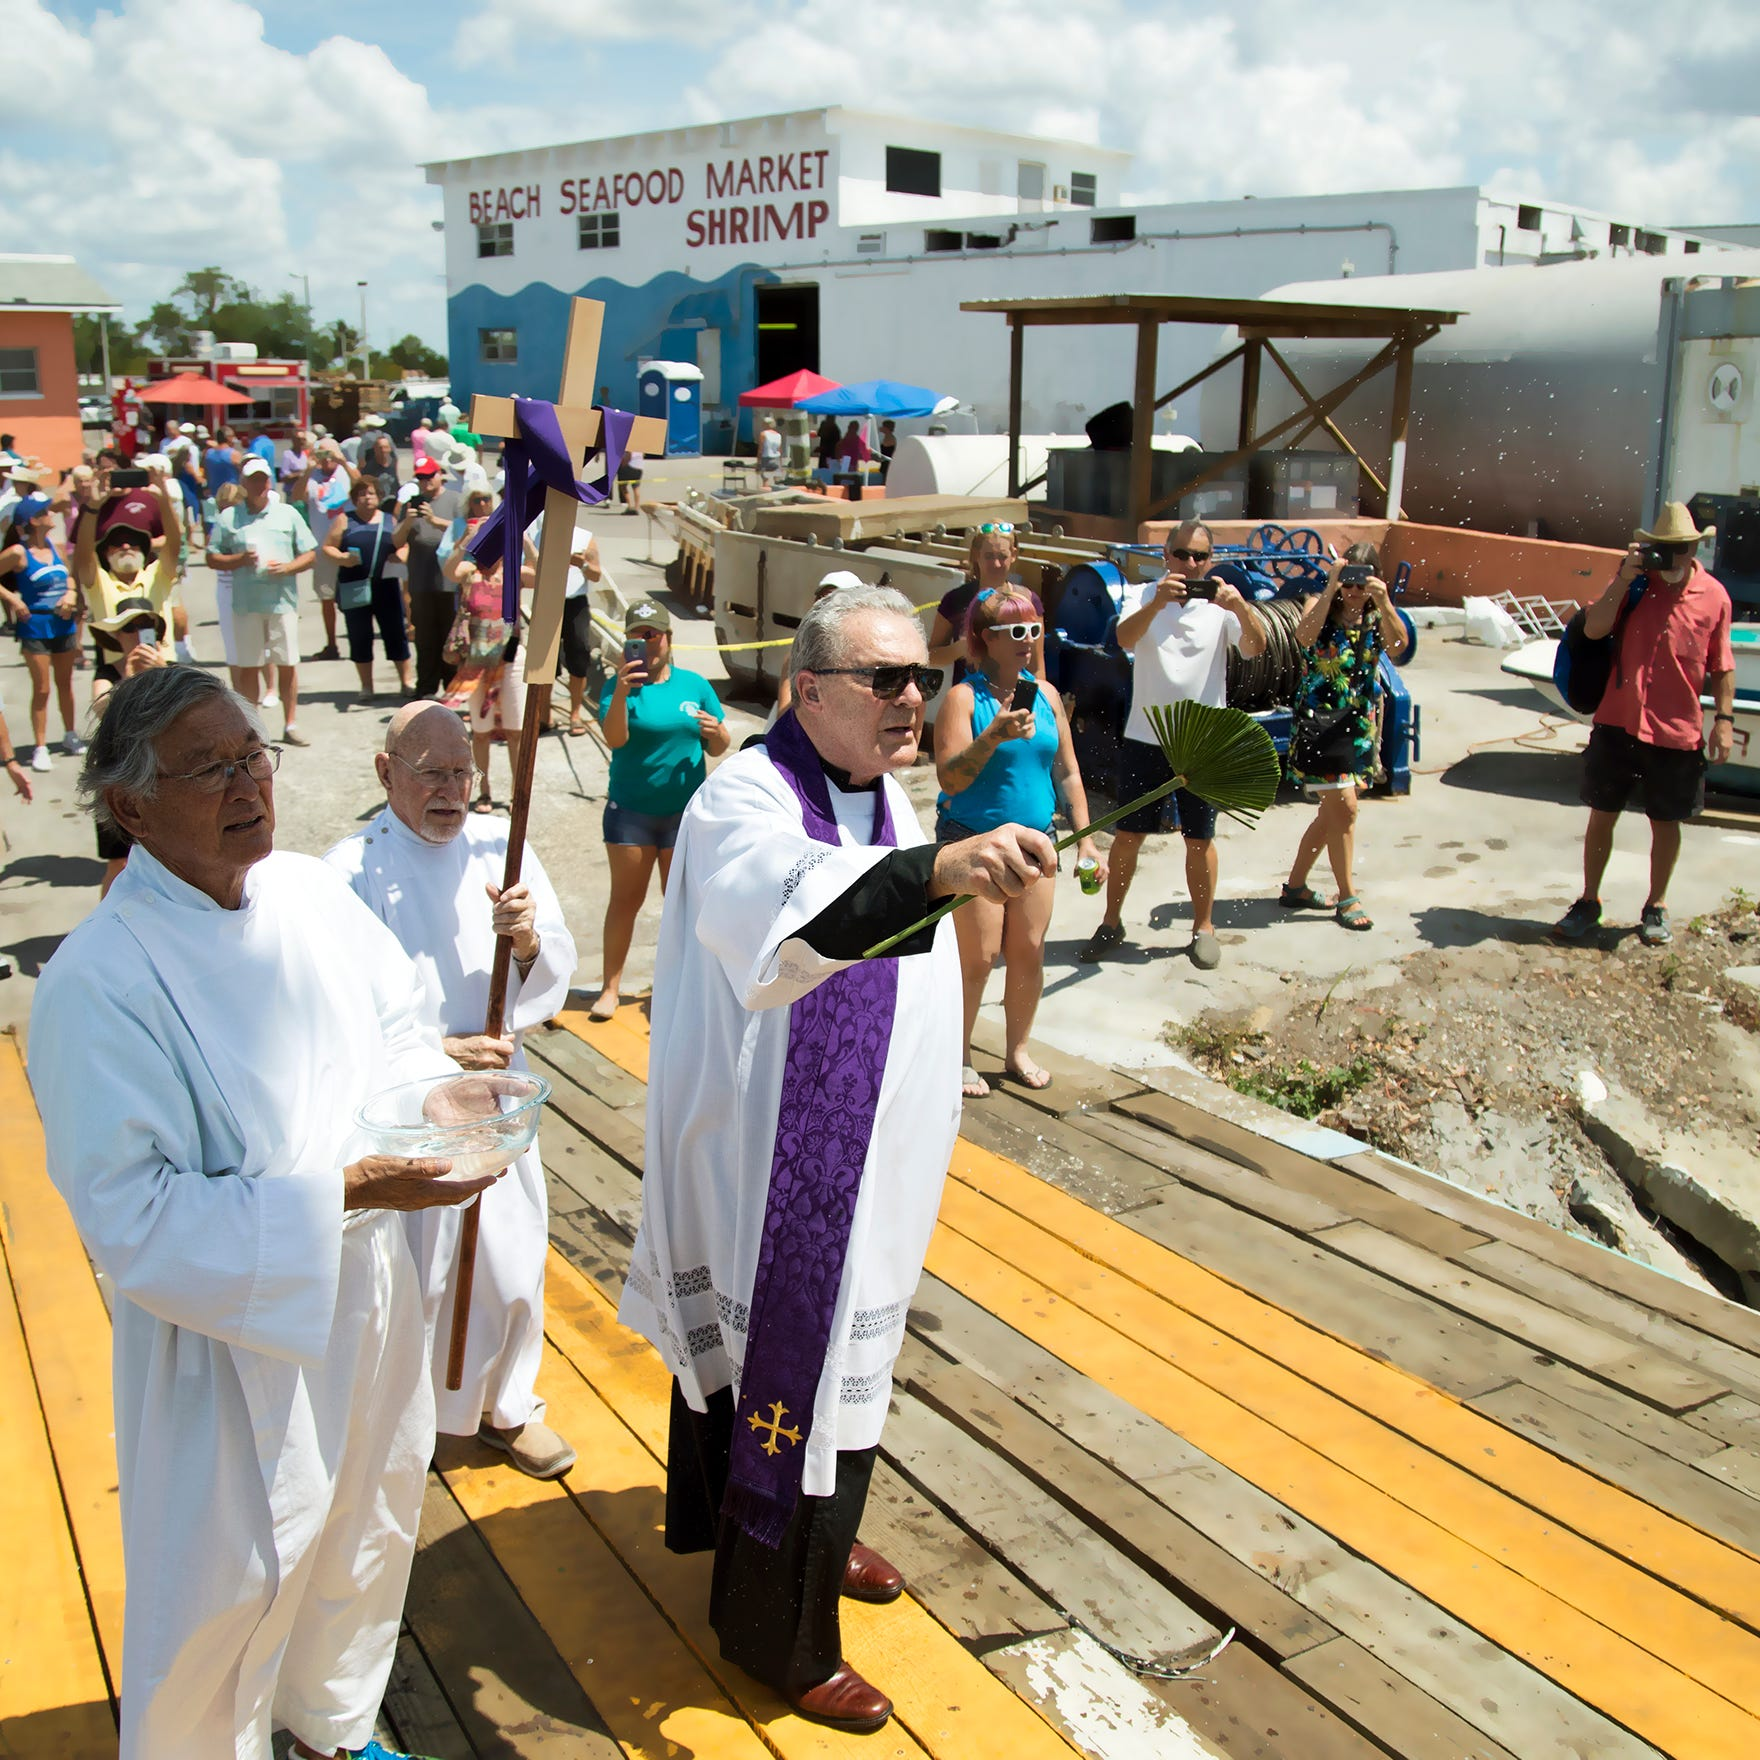 Back to the blessing: Prayers said, holy water sprinkled on Fort Myers Beach shrimp fleet